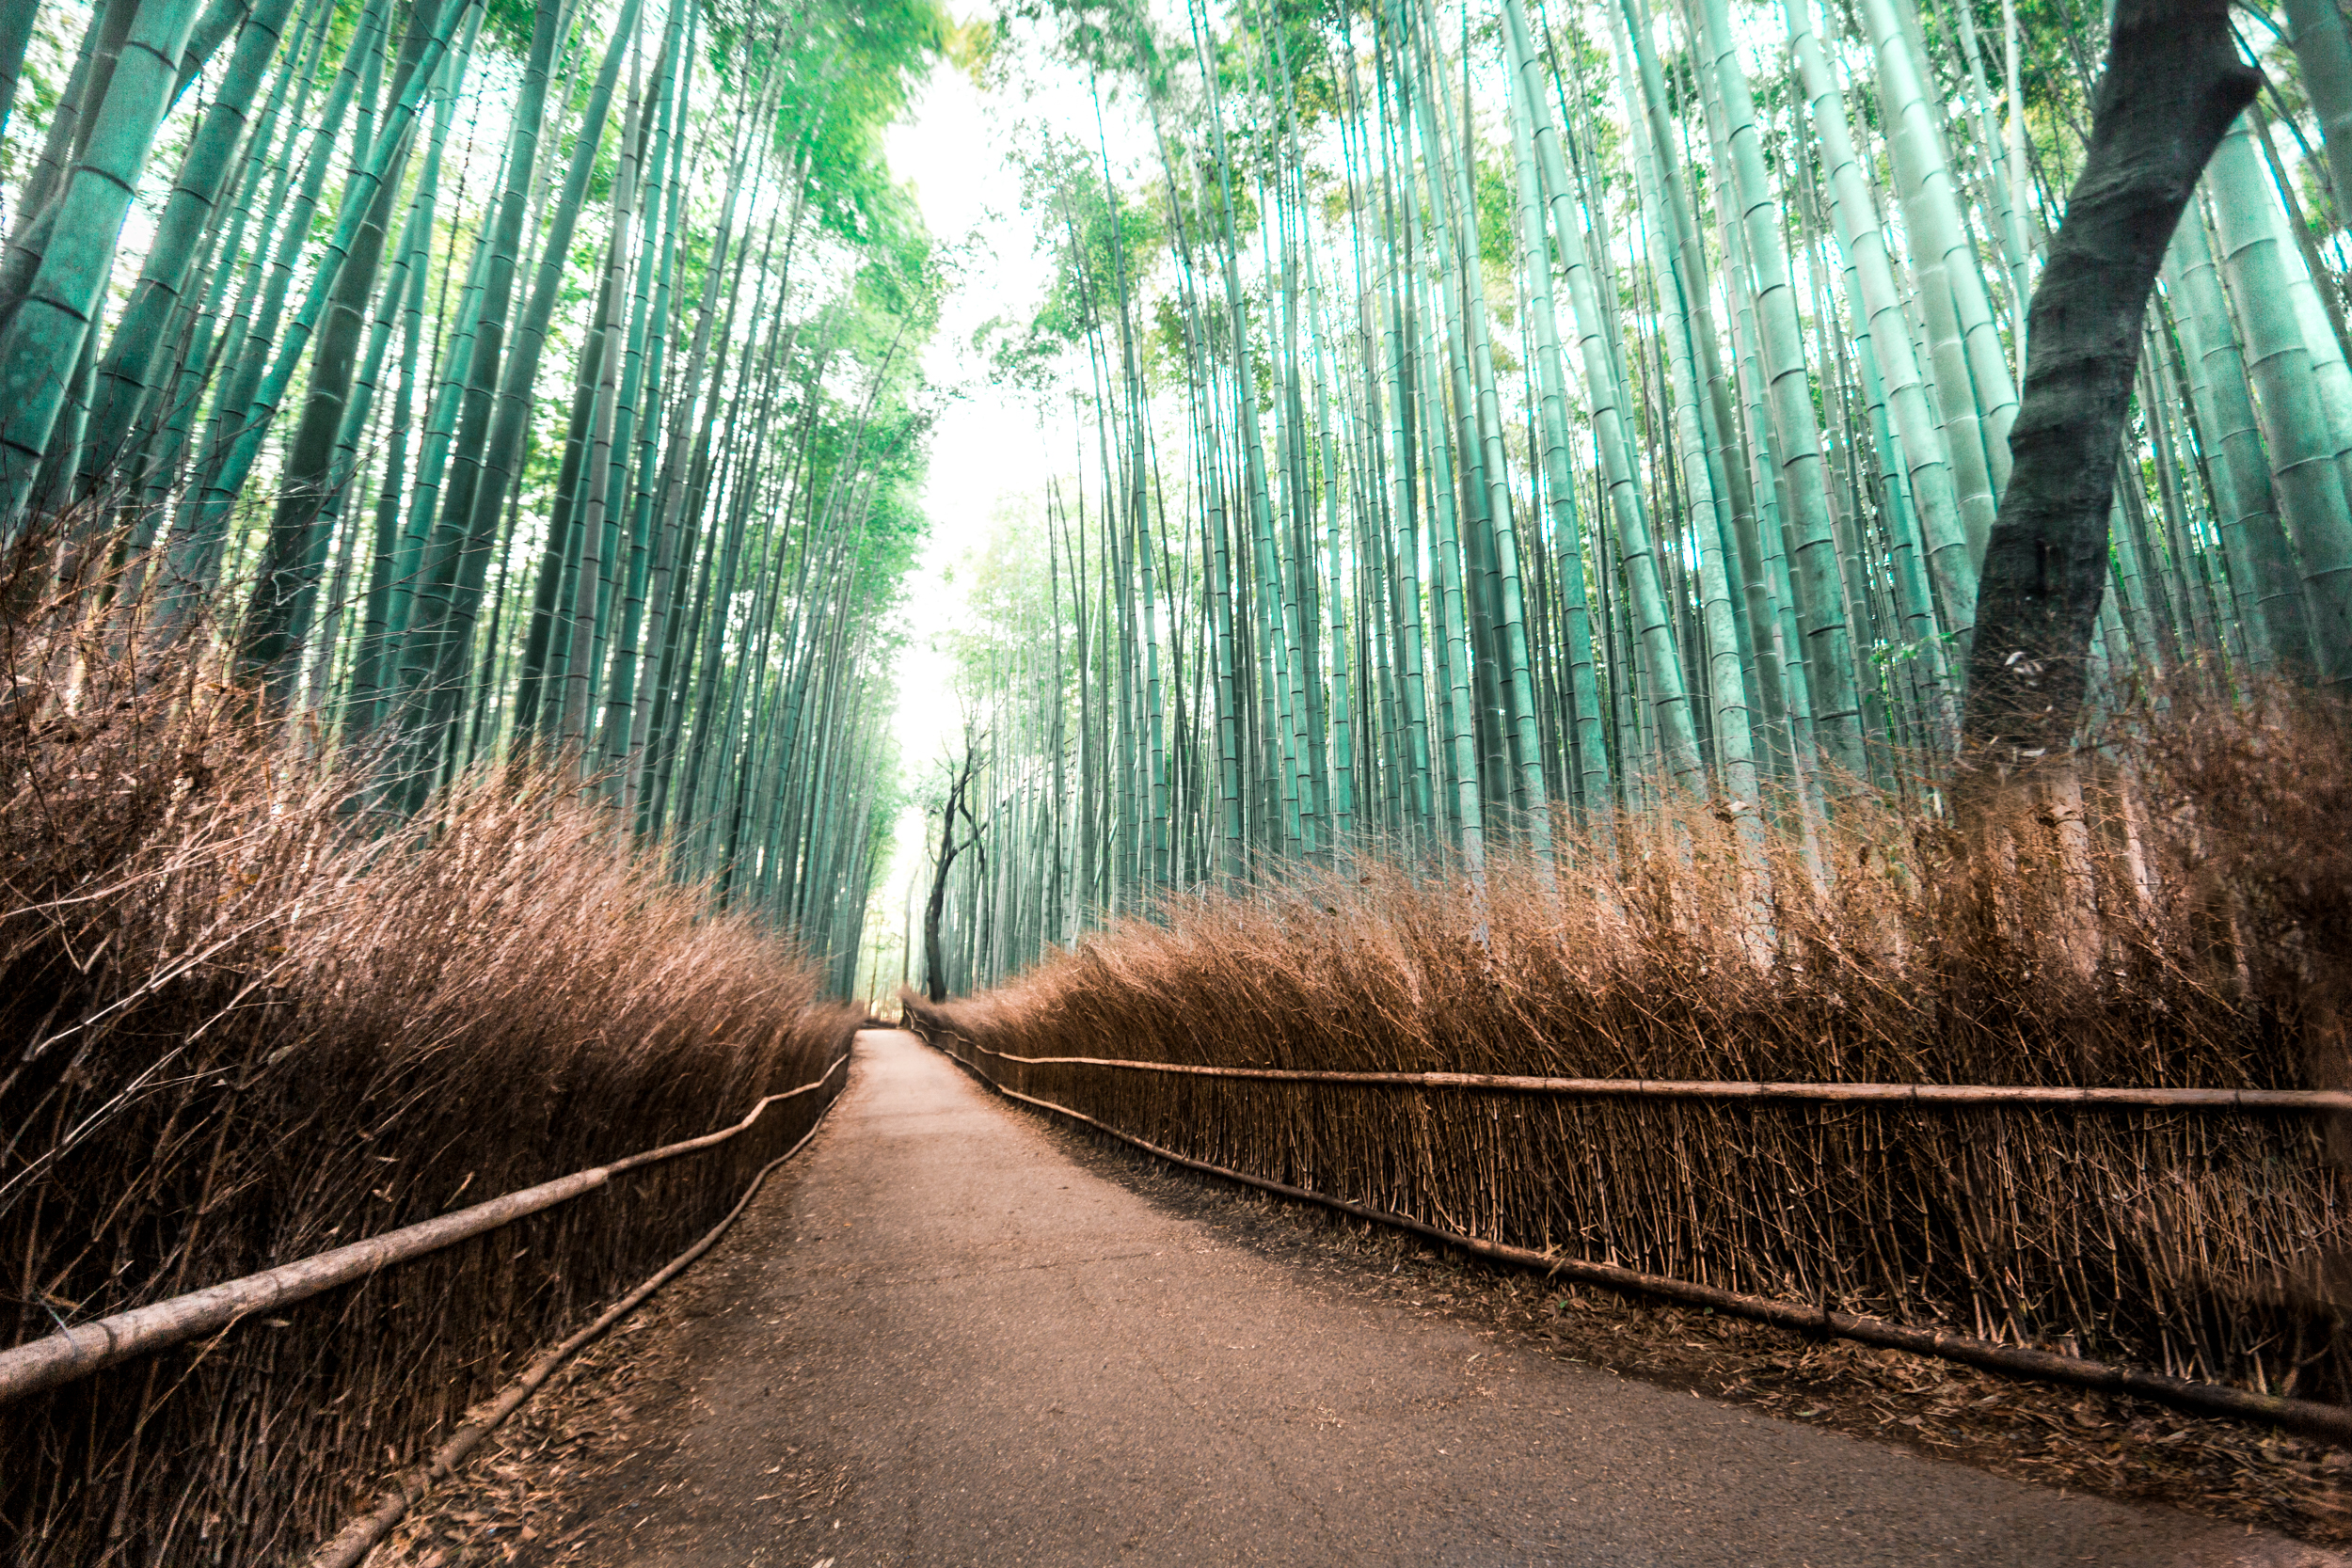 The Arashiyama bamboo grove outside of Kyoto, Japan.